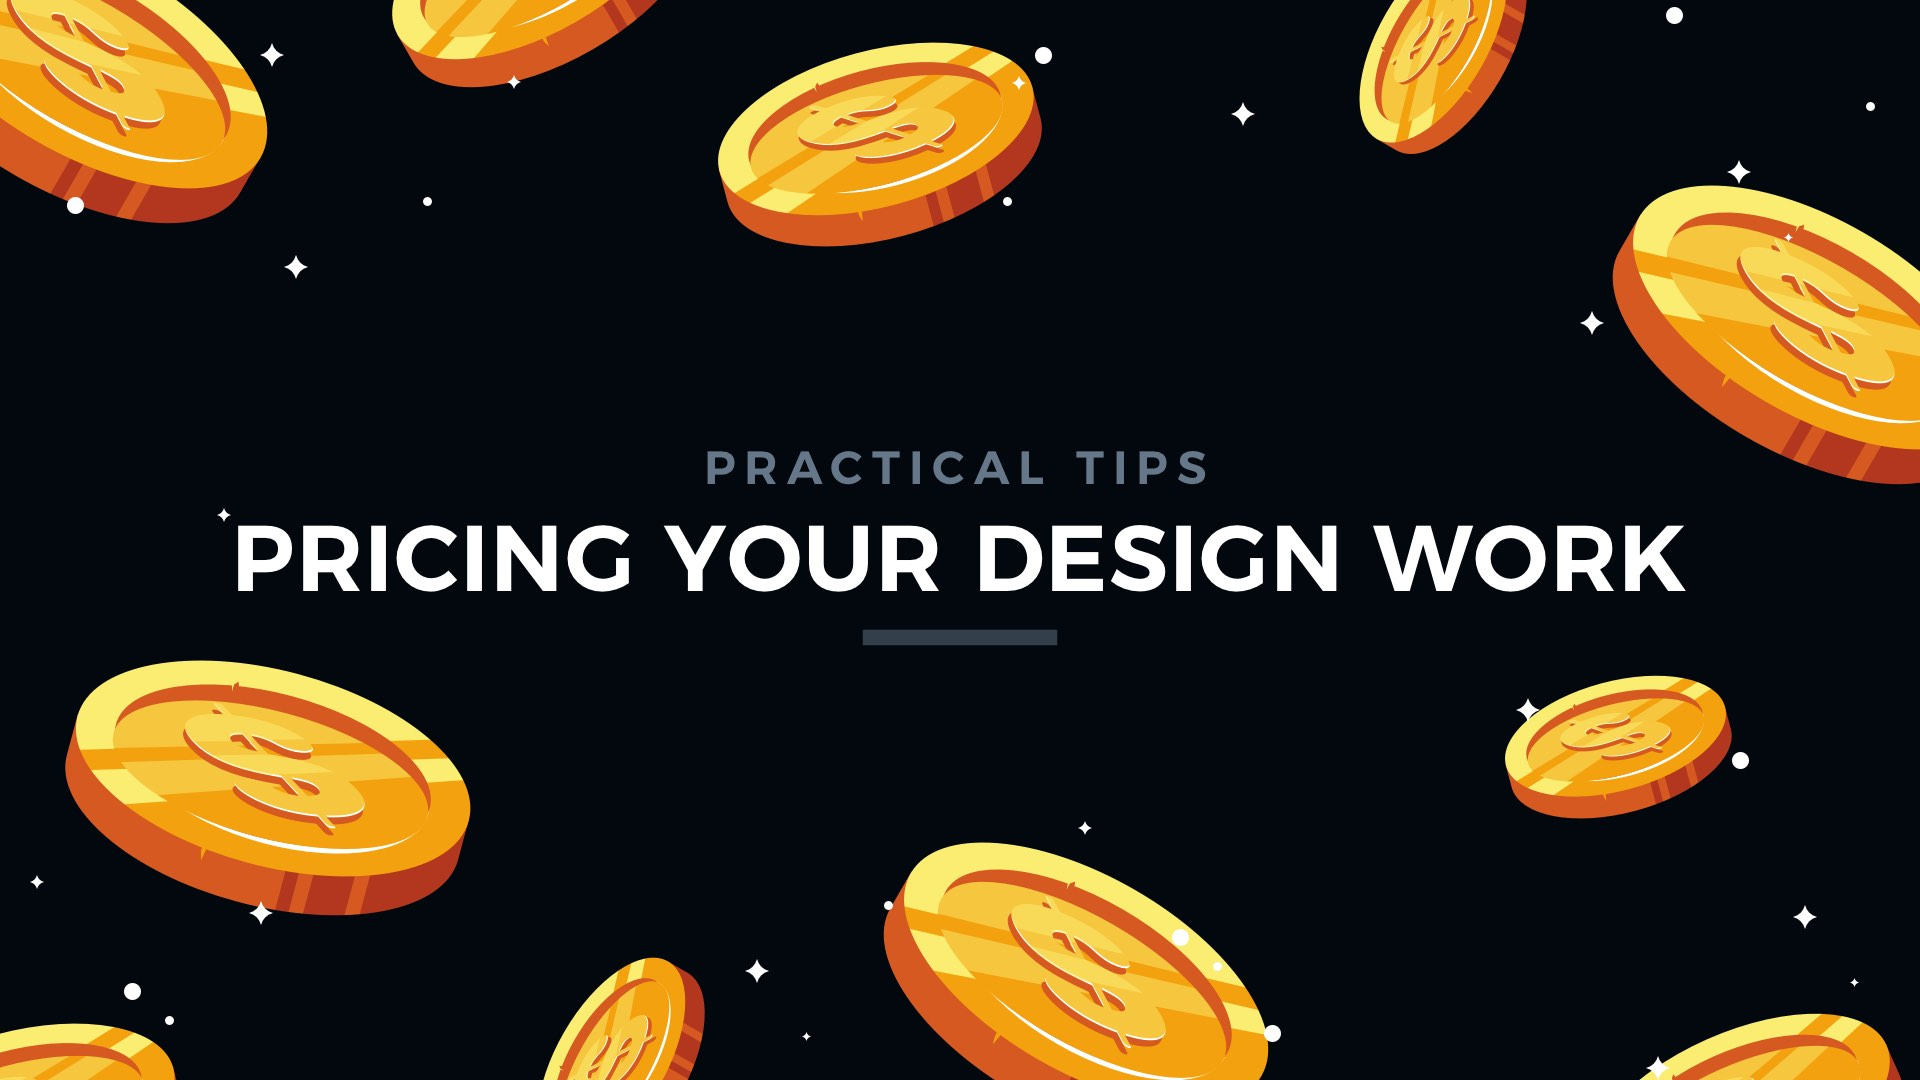 Pricing design - practical tips